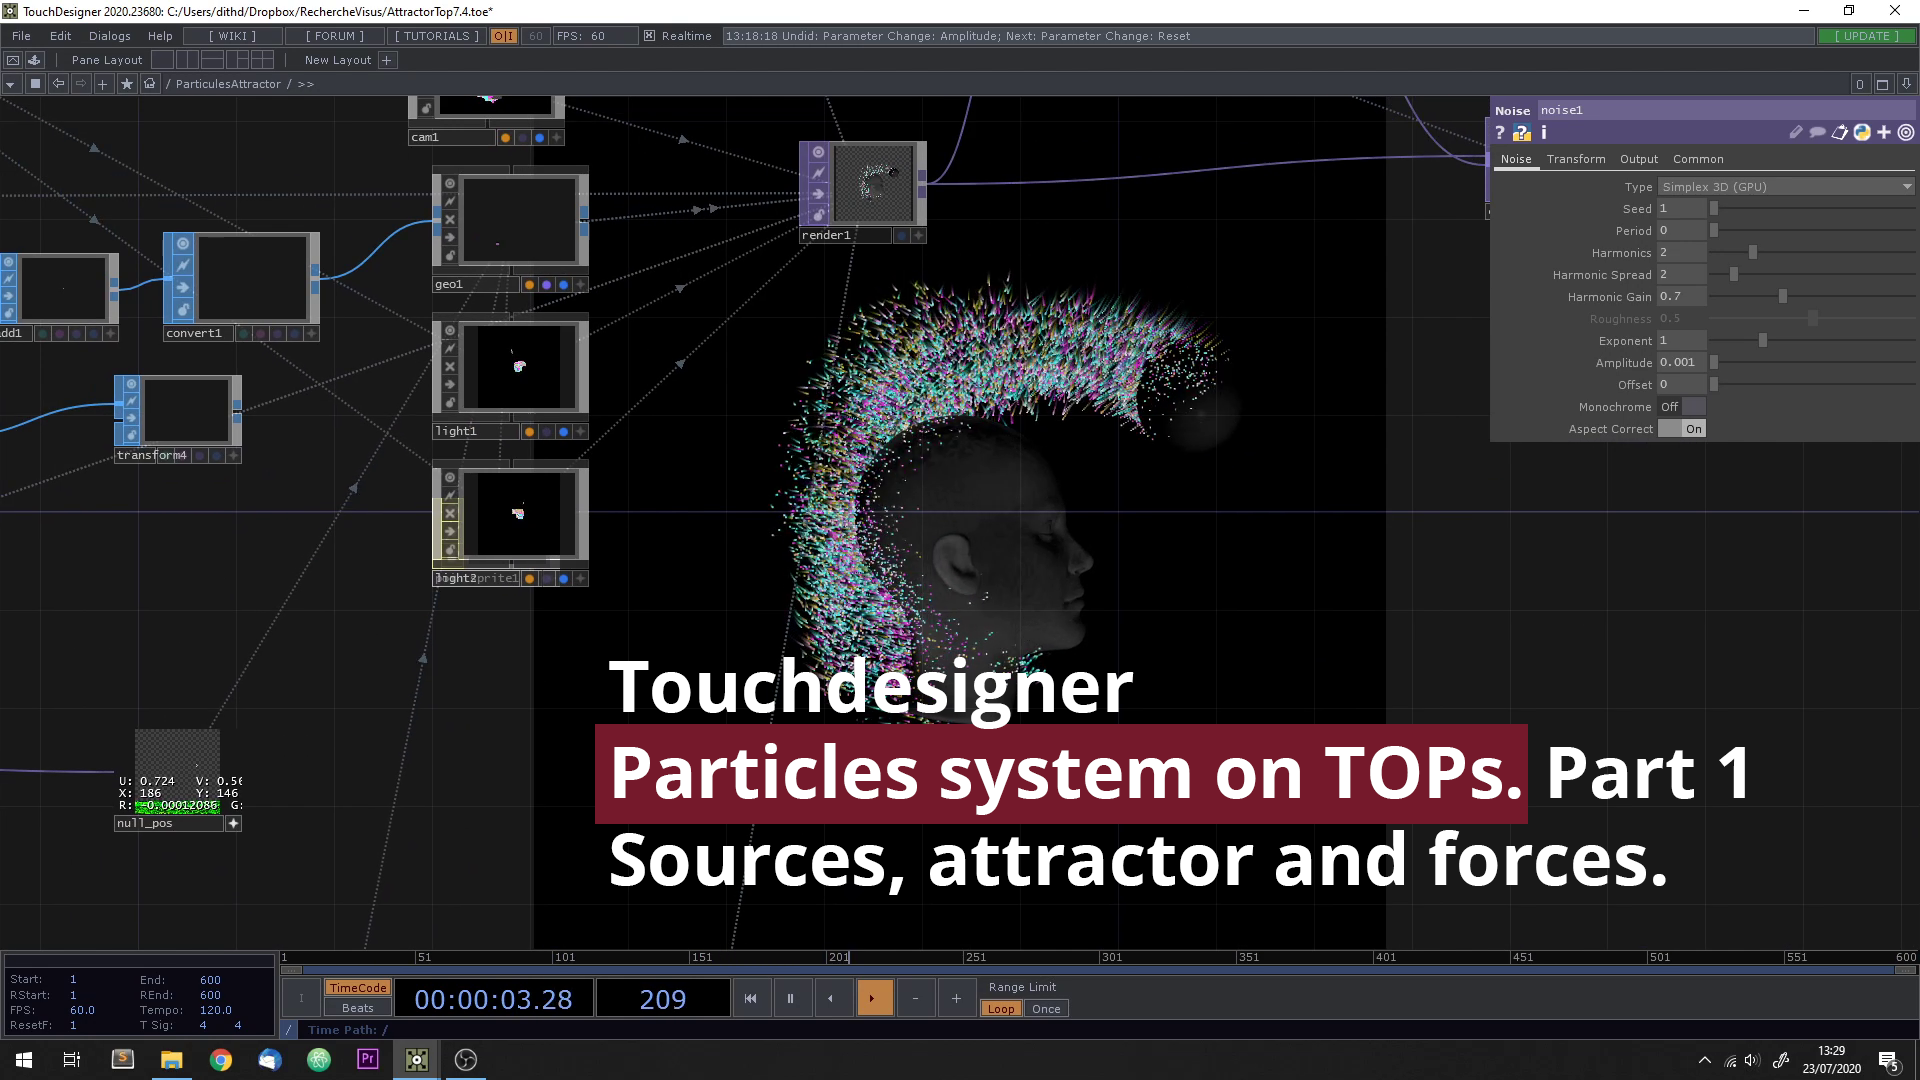 Particles system based on Tops